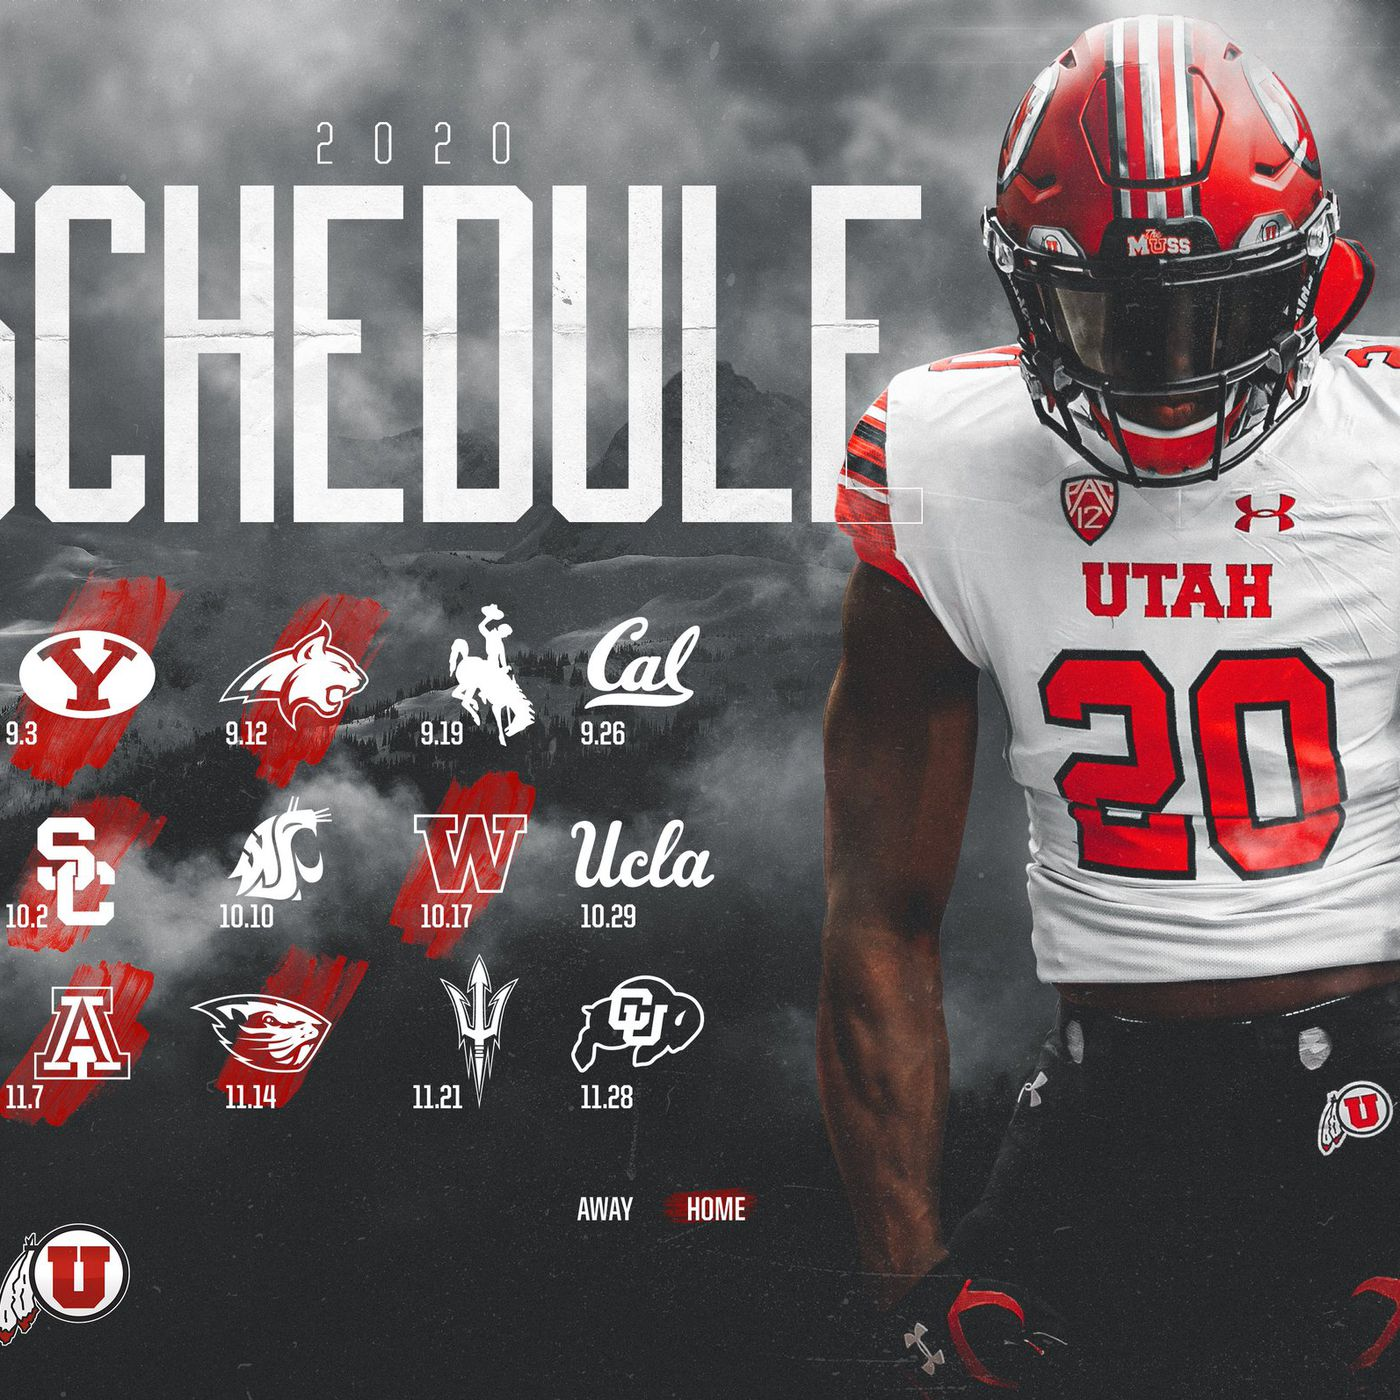 uw husky football schedule 2020